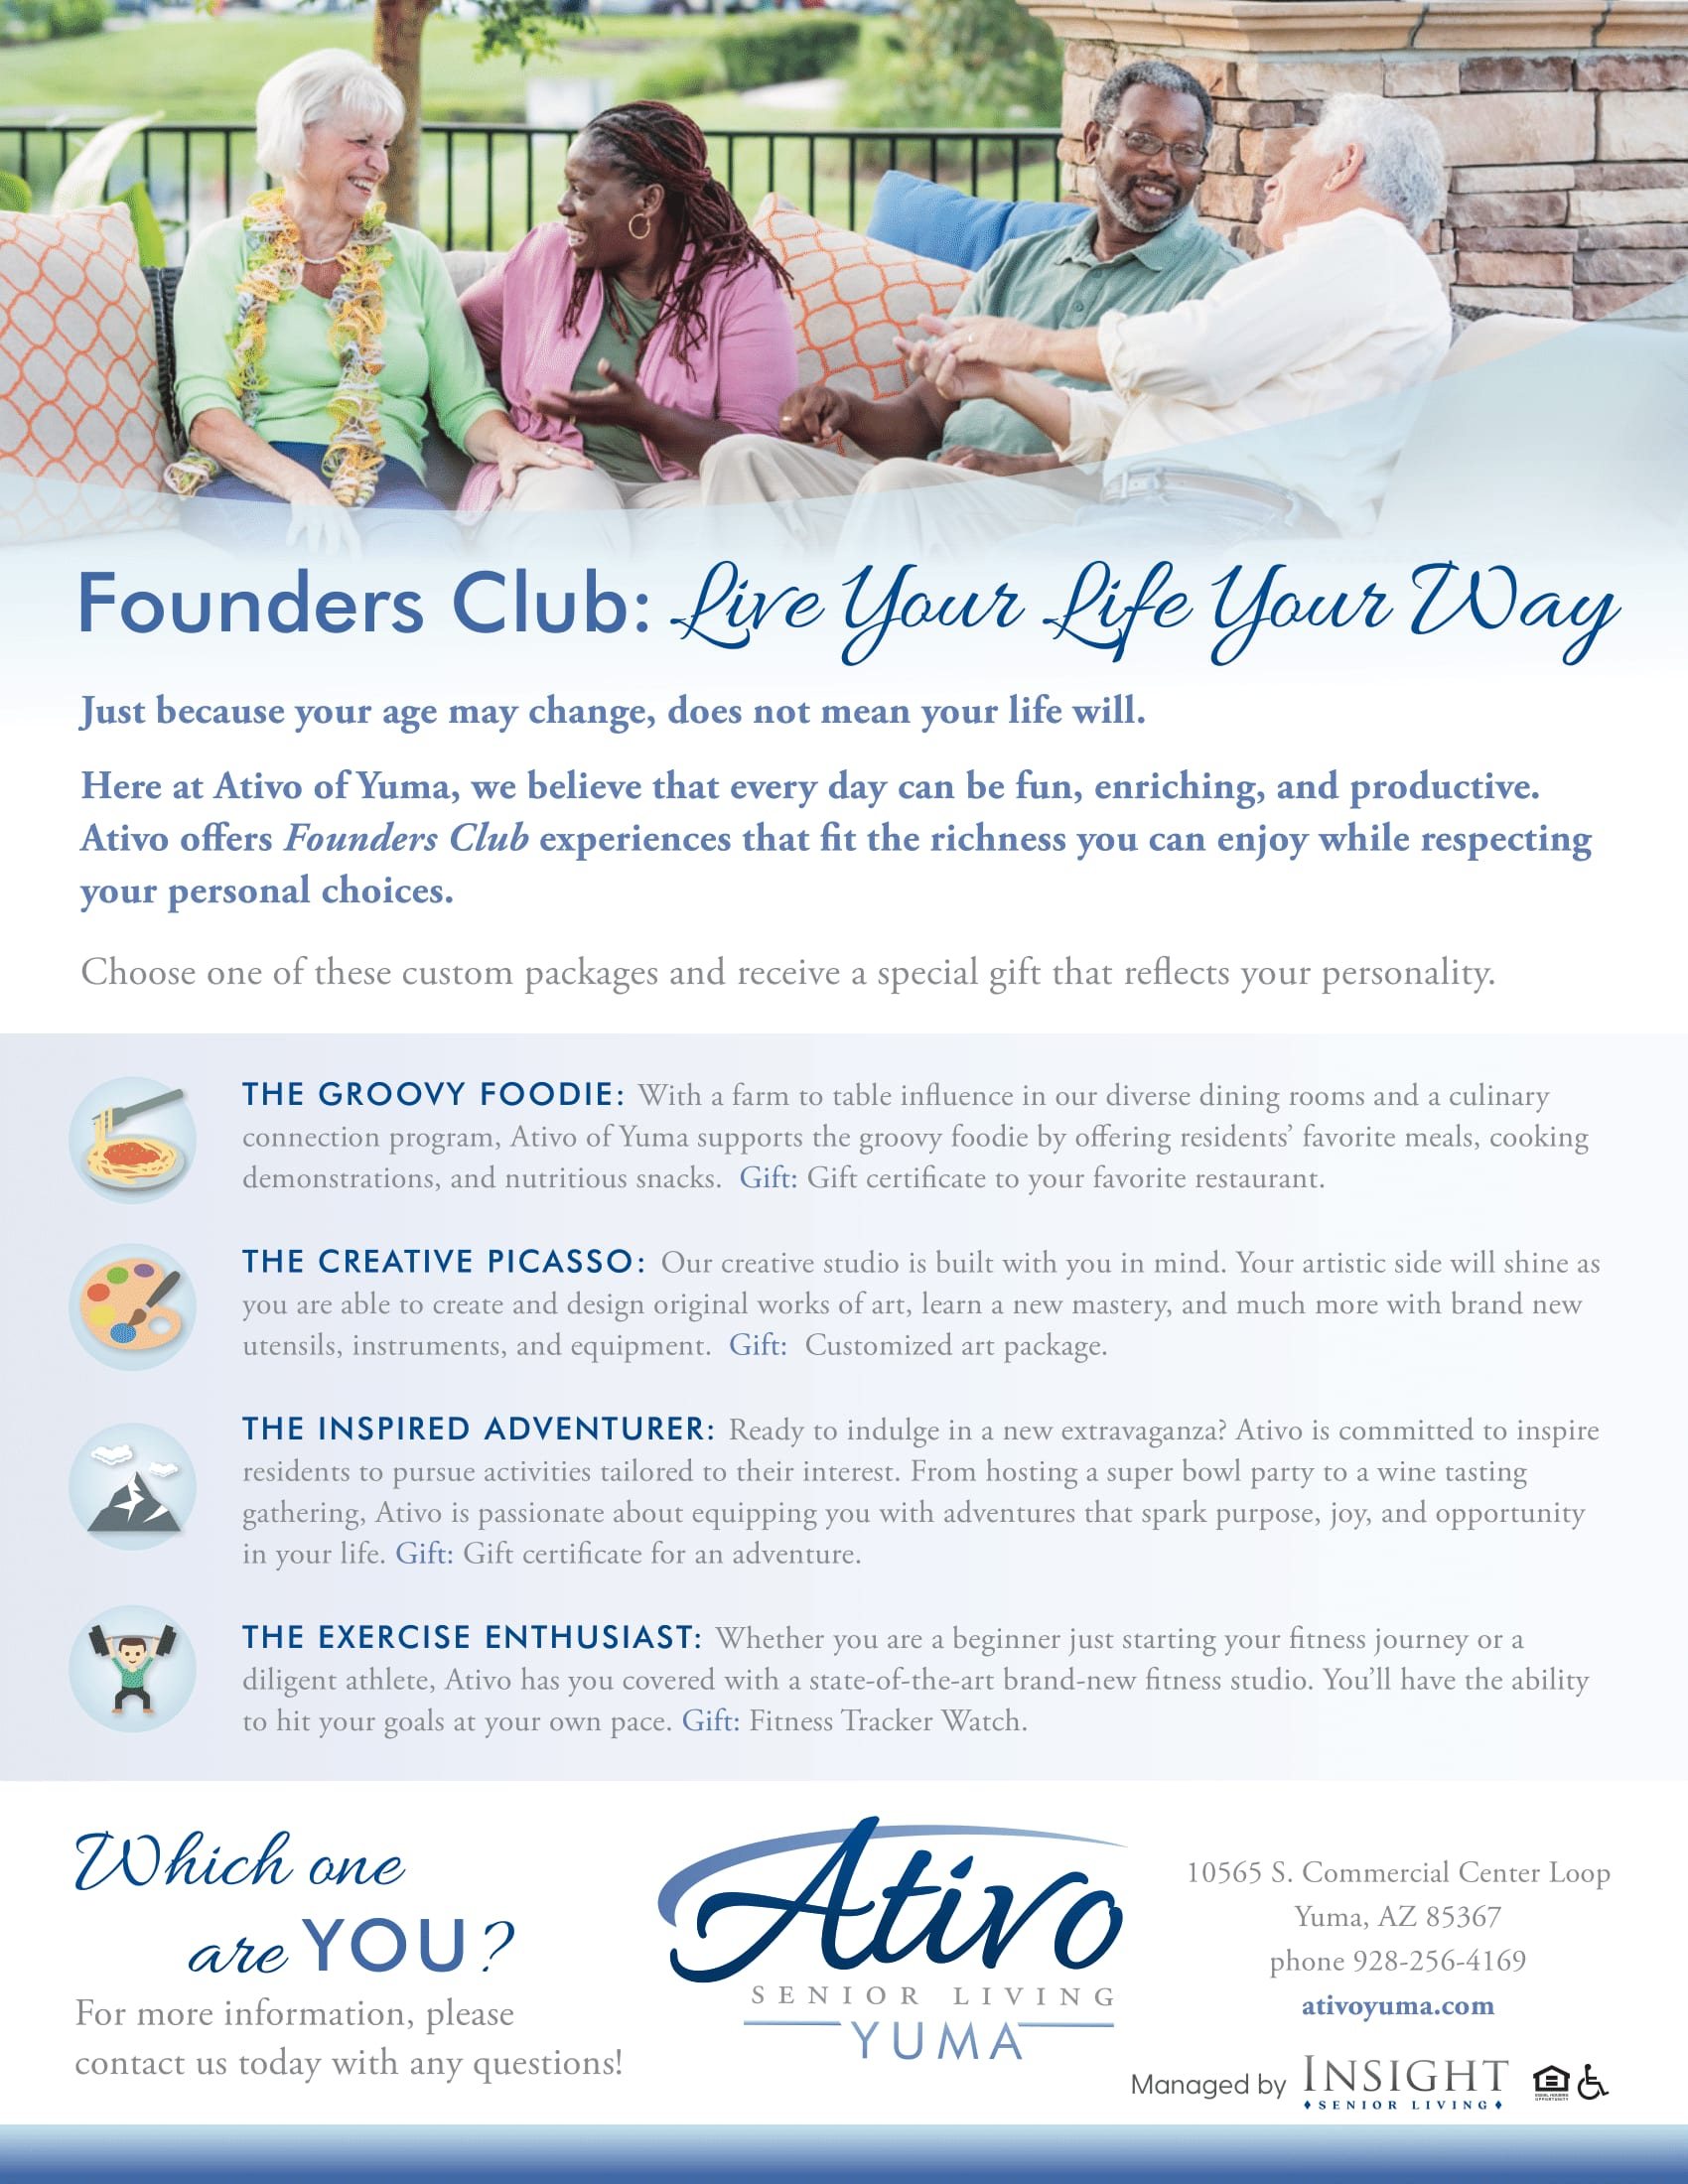 A second flyer about Founder's Club